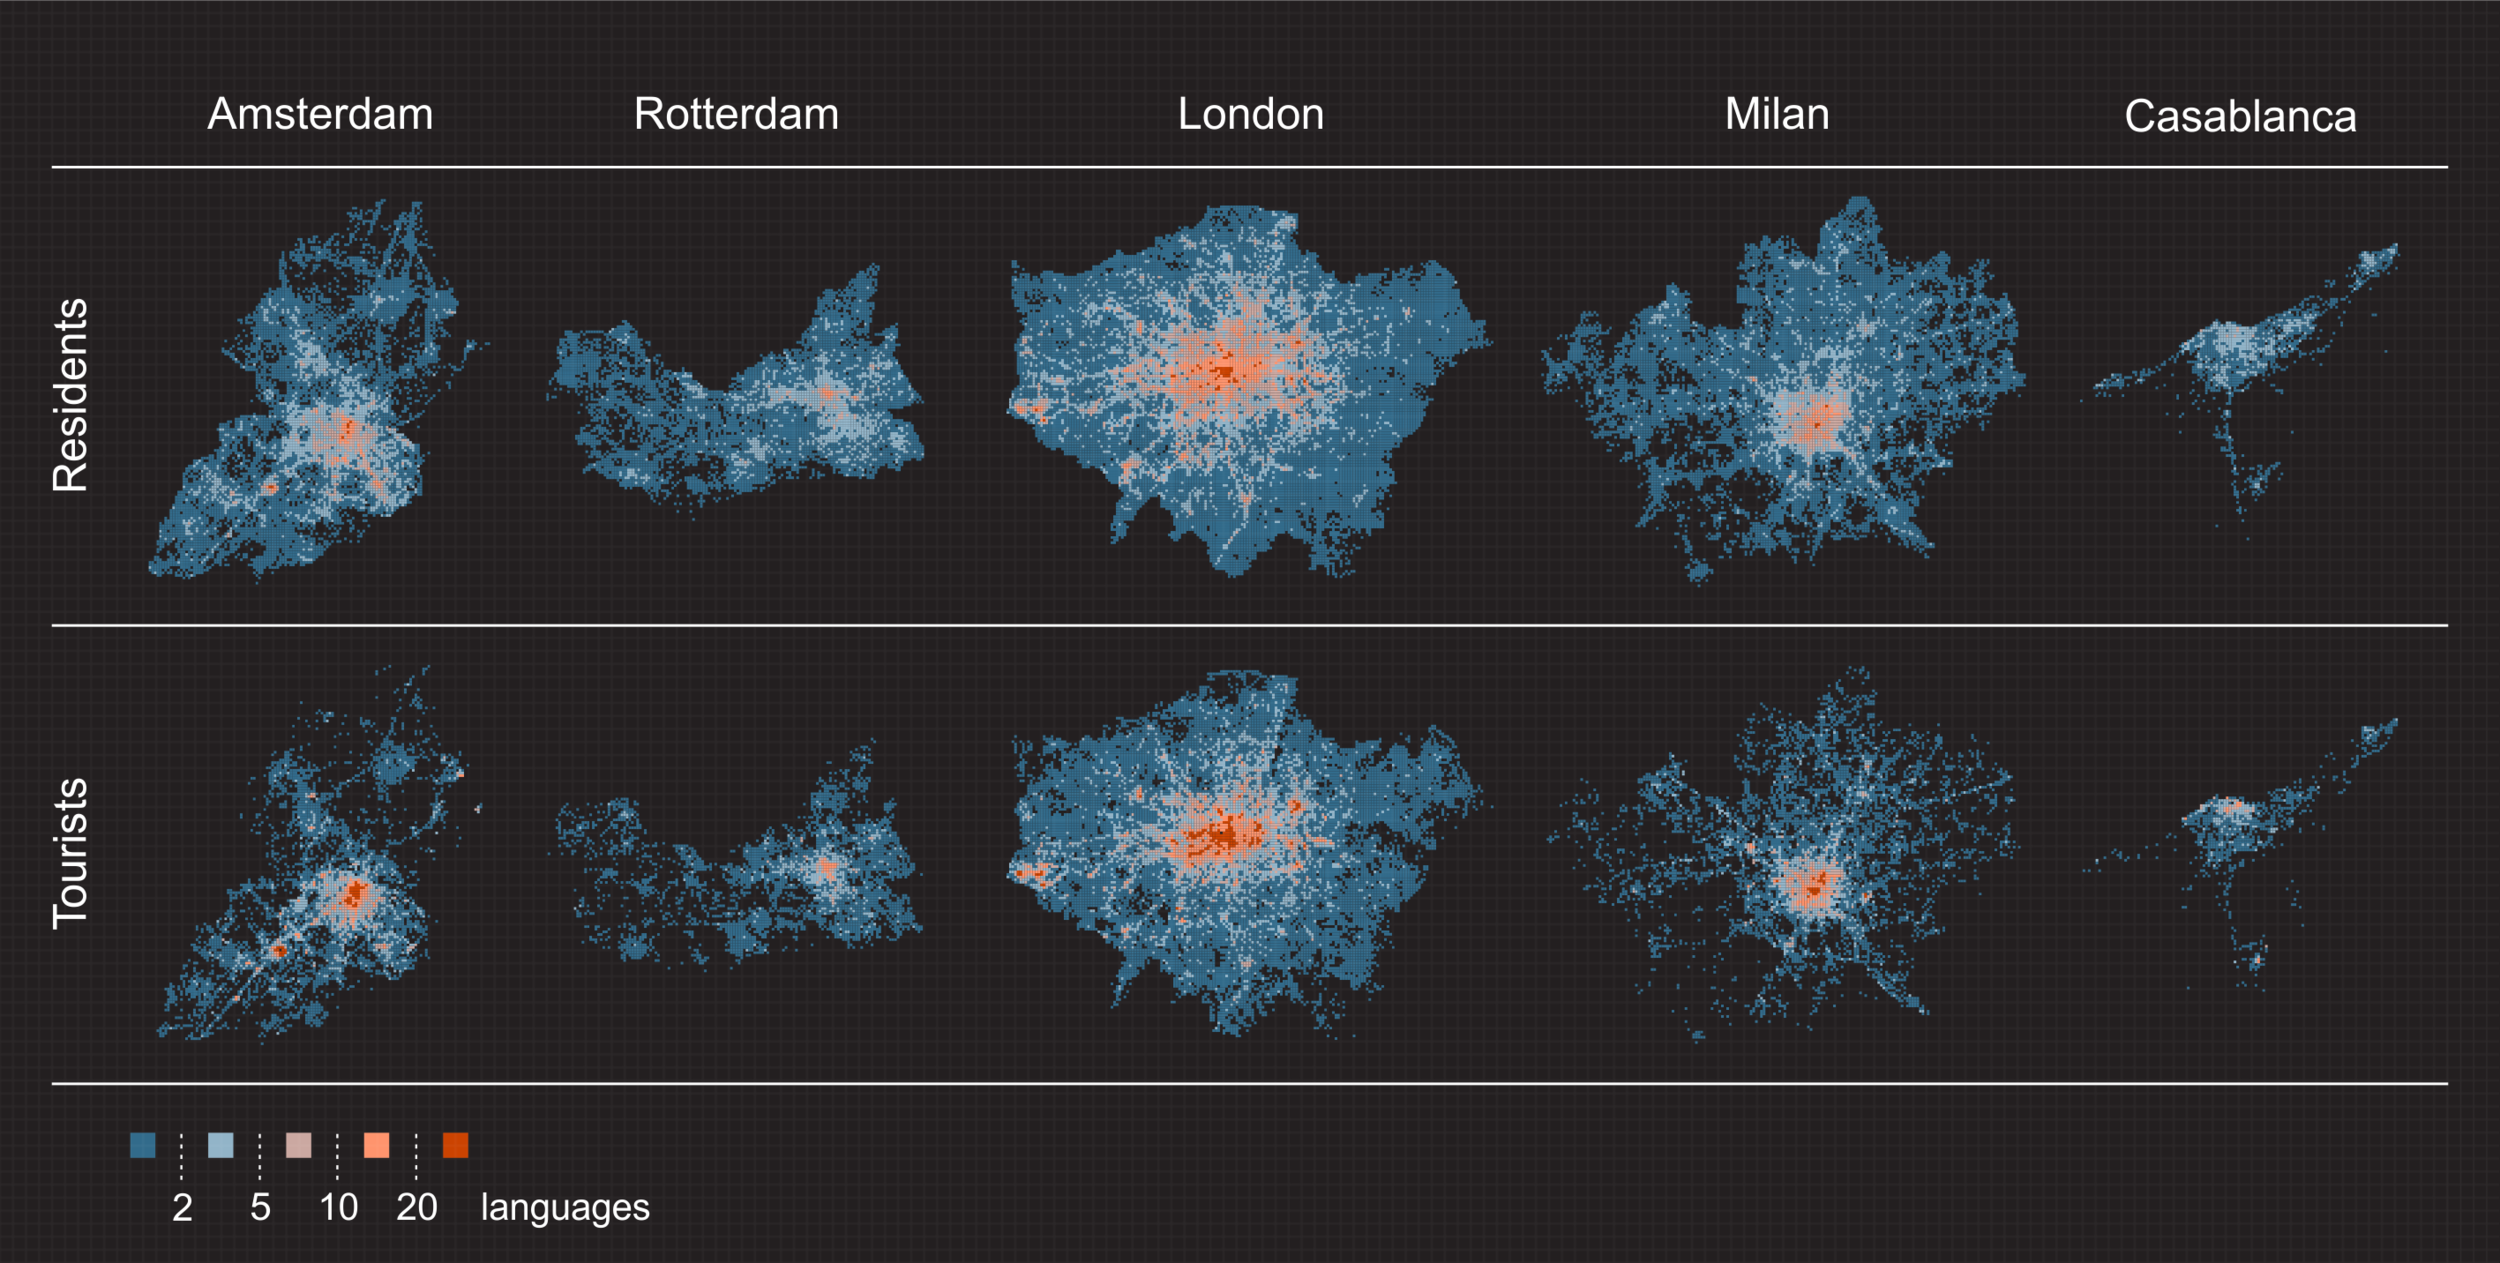 Spatial diversity of languages in five studied cities.  Number of languages used on Twitter by residents (top) and tourists (bottom). Both groups share common hot-spots of language diversity in the city center and near airports. Yet, while the  increased diversity for tourists concentrates only around those hot-spots, increased mixture of residential population spreads wider, covering different pars of the cities or even suburbs.